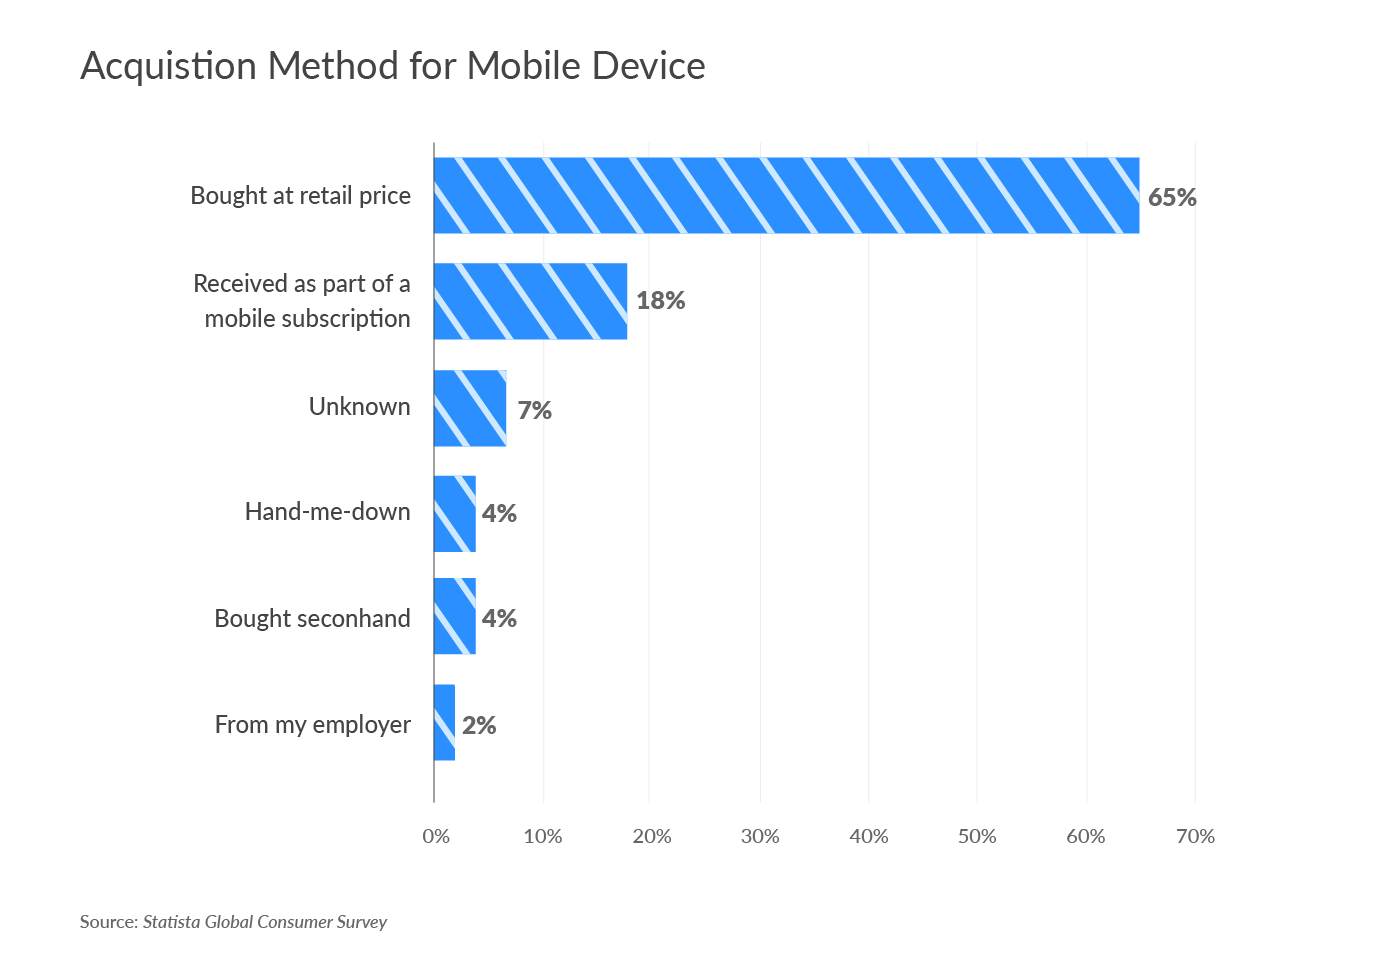 Acquisition Method for Mobile Device